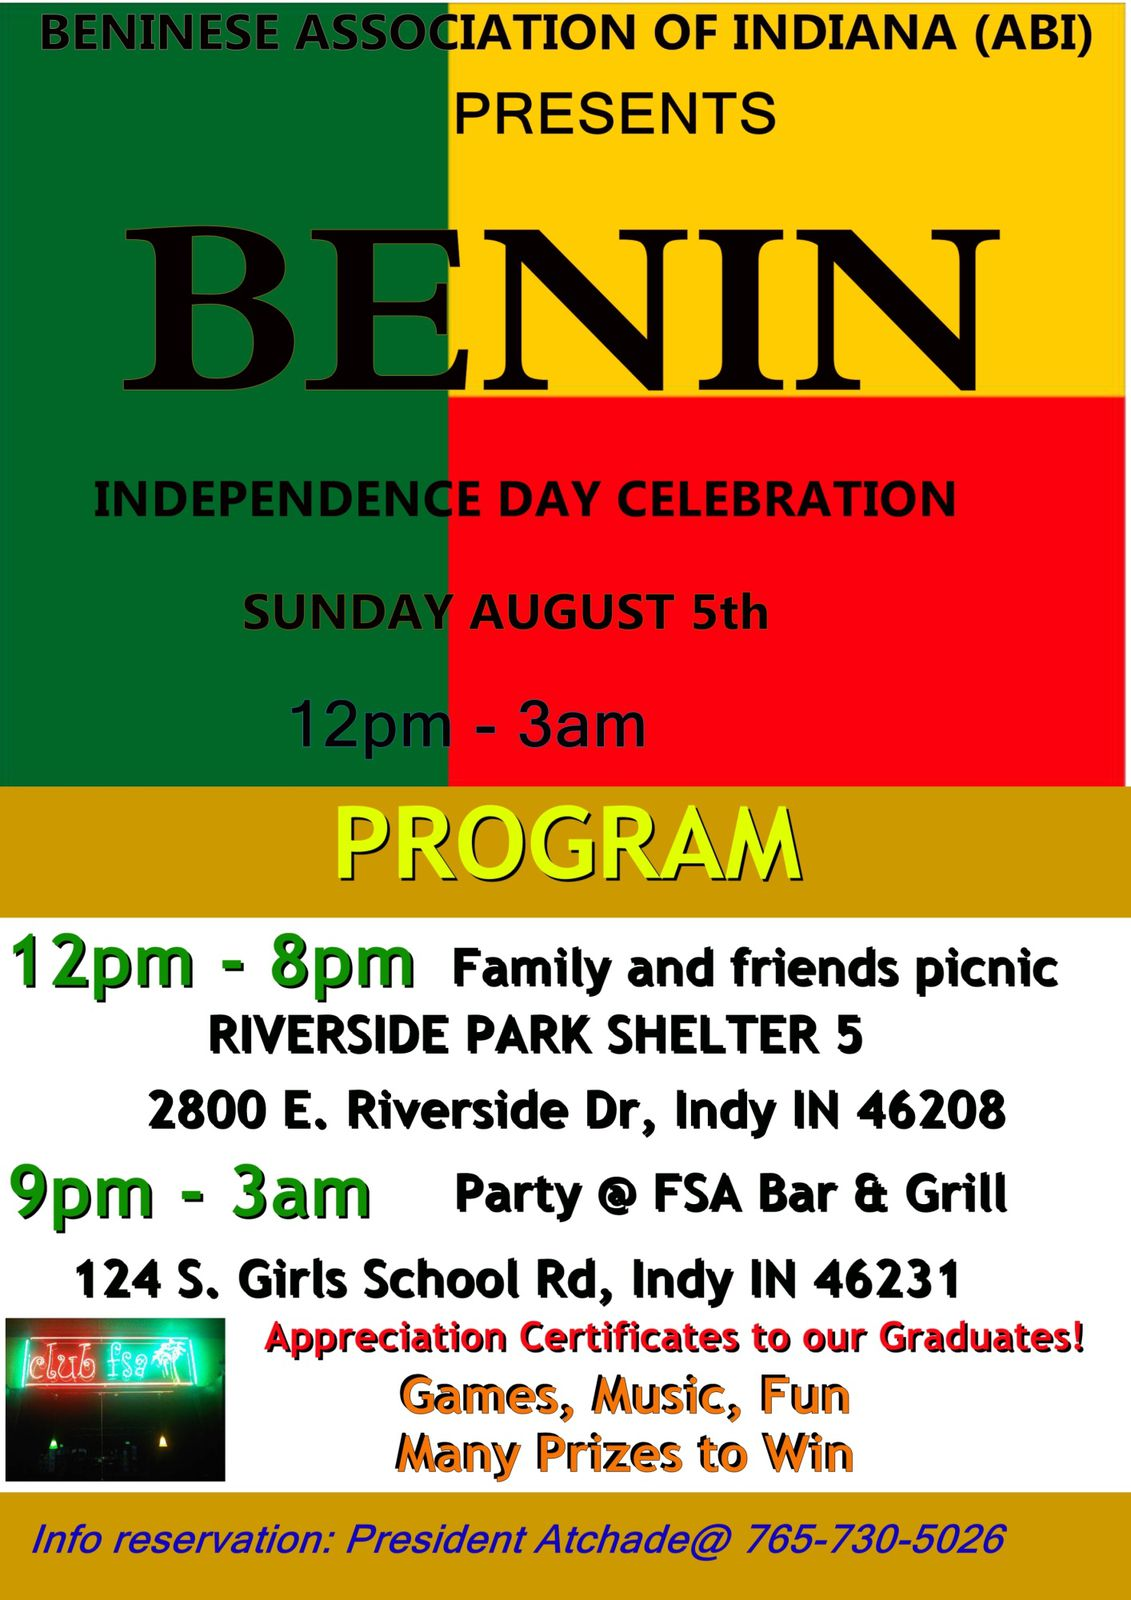 Benin-Independance-celebration_2012_INDIANA.jpg